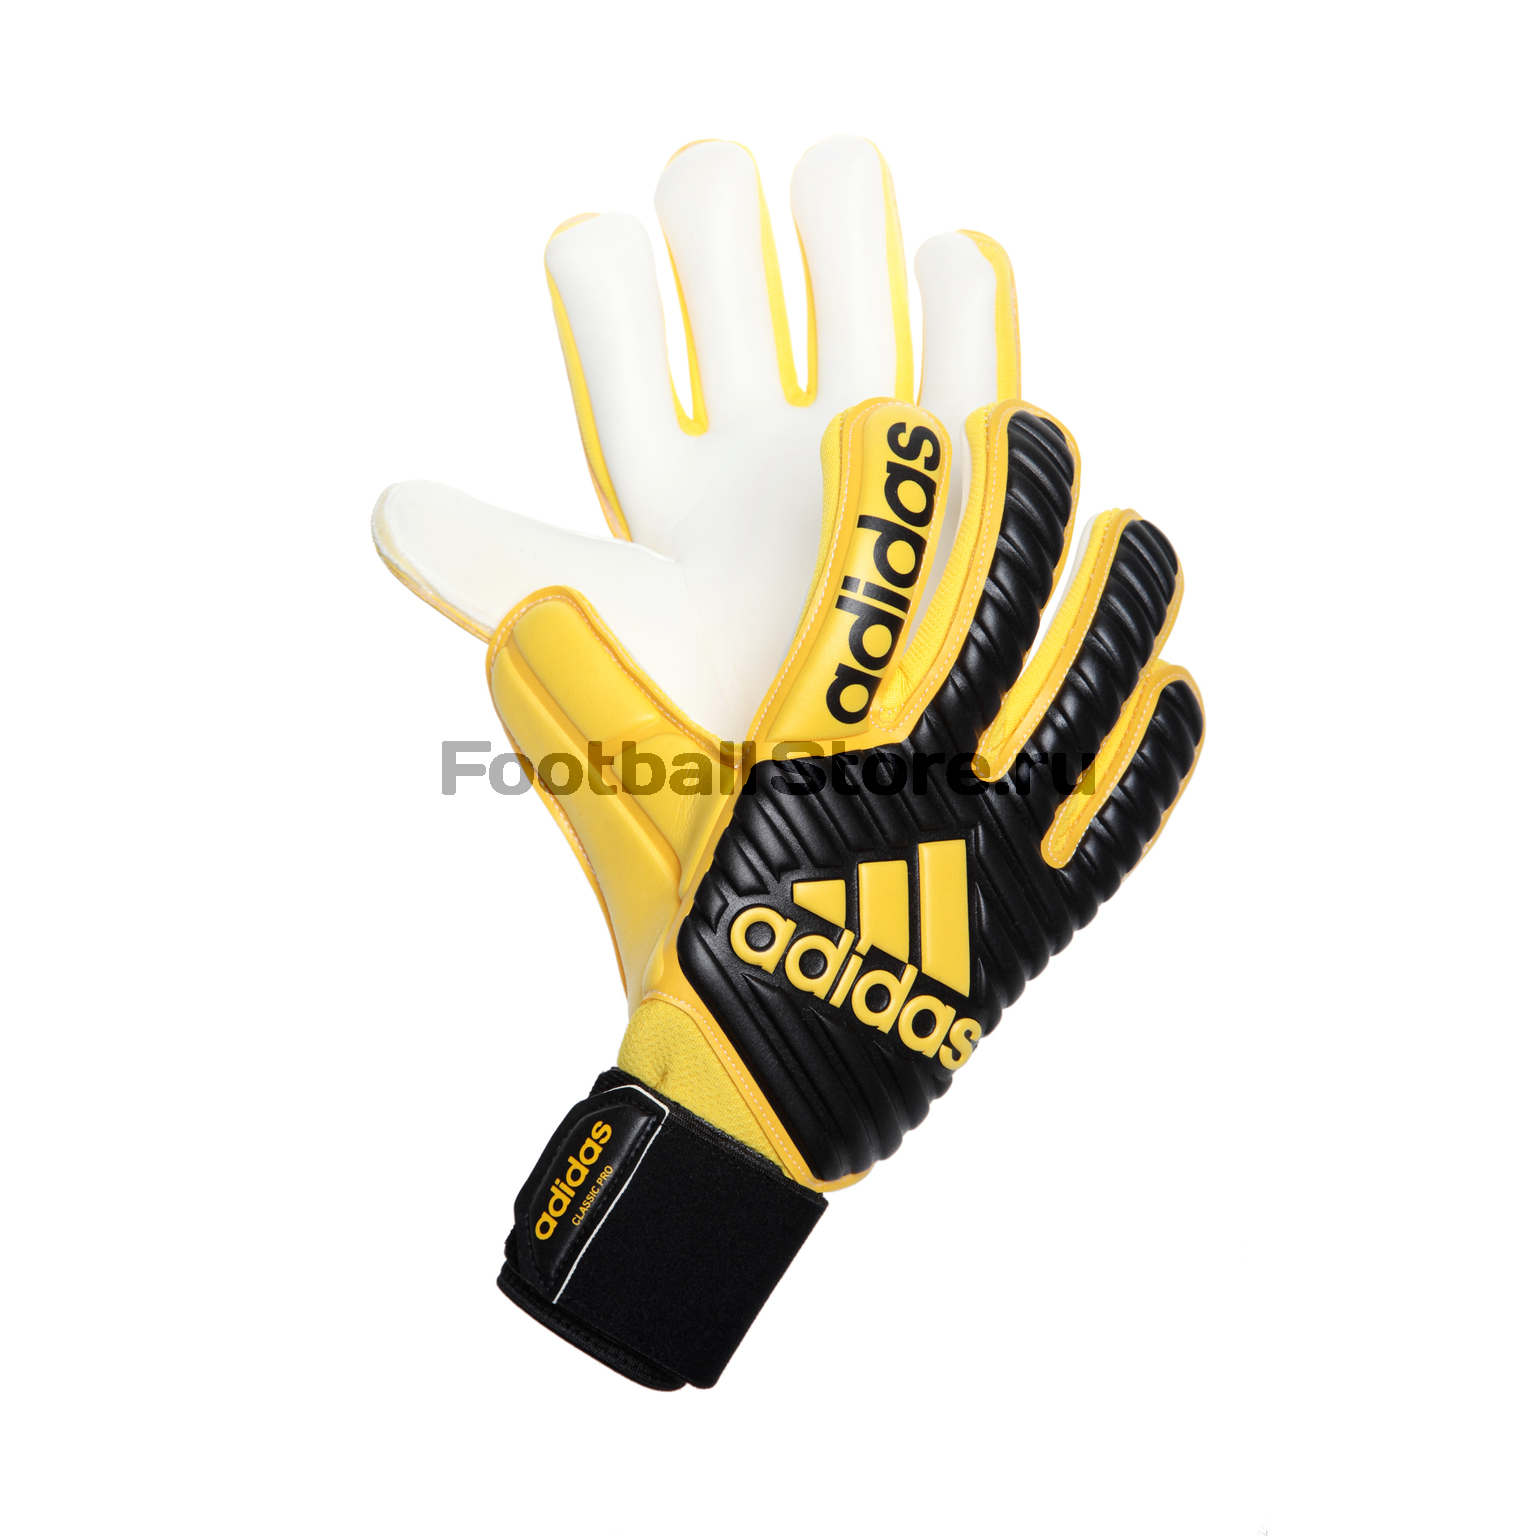 Перчатки Adidas Перчатки вратарские Adidas Classic Pro BS1536 платье lucky move lucky move mp002xw0e1zw